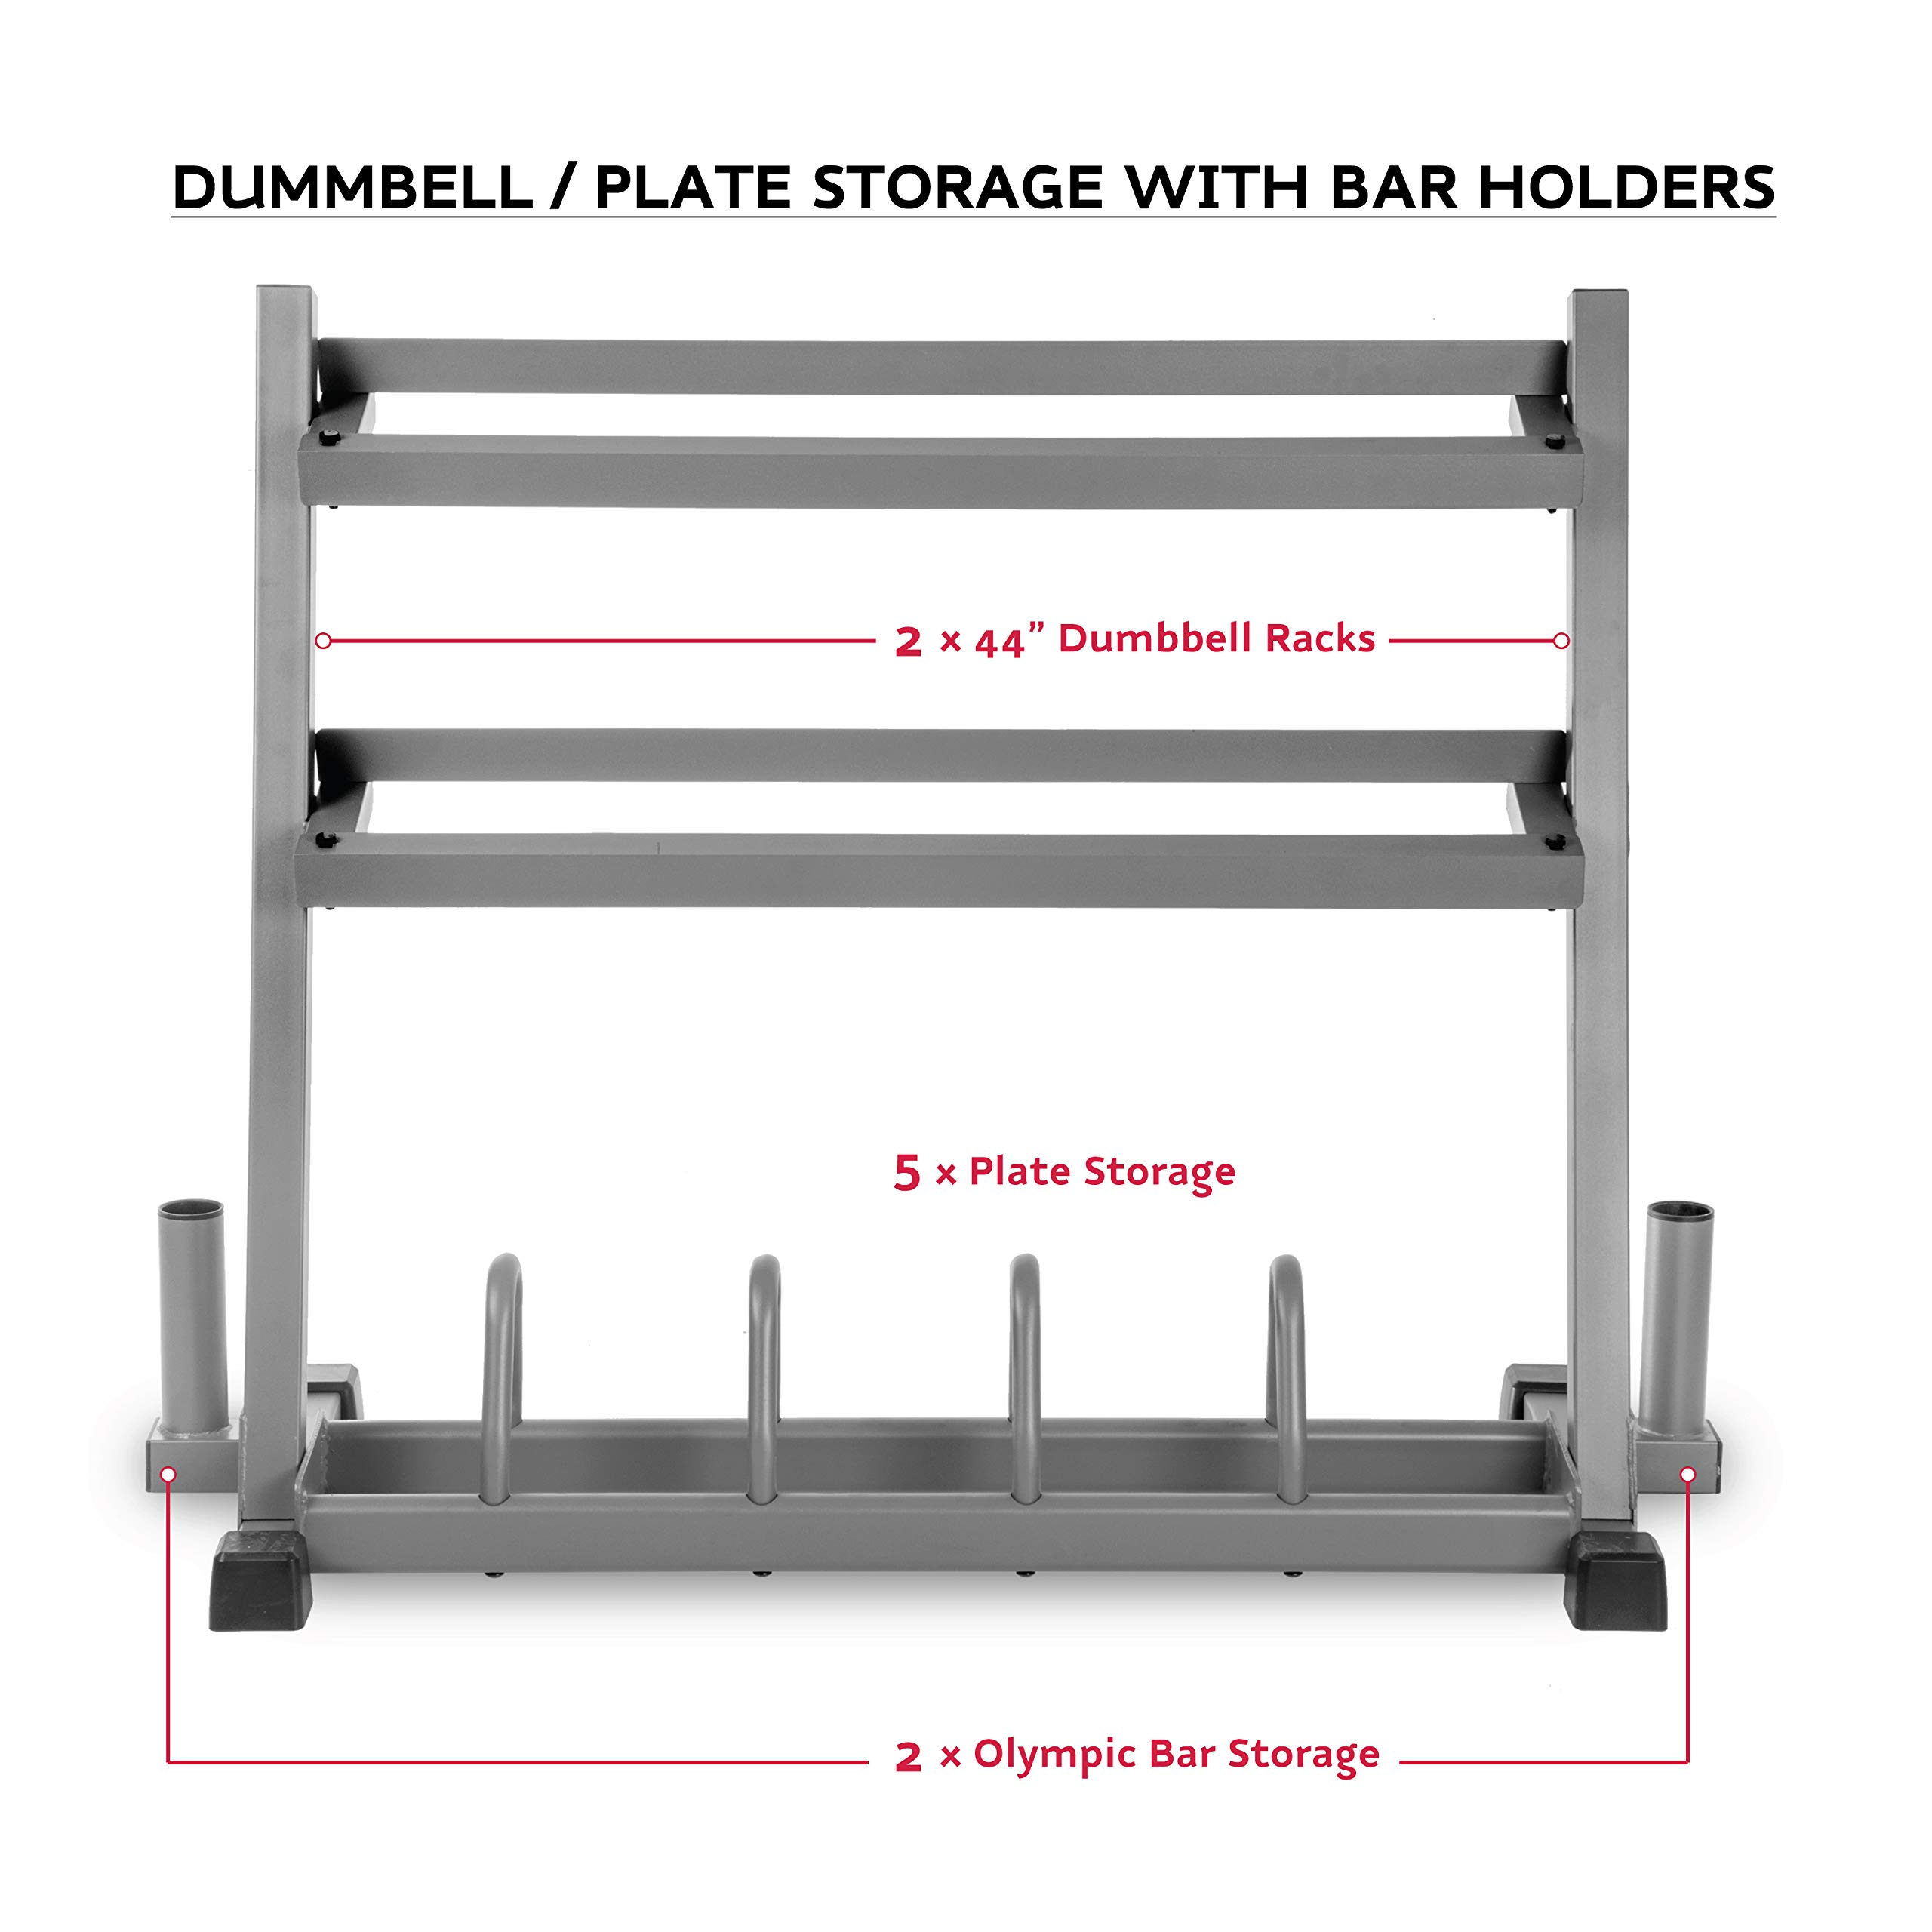 XMark All-in-One Dumbbell Rack, Plate Weight Storage and Dual Vertical Bar Holder, Design Patent Pending by XMark (Image #2)